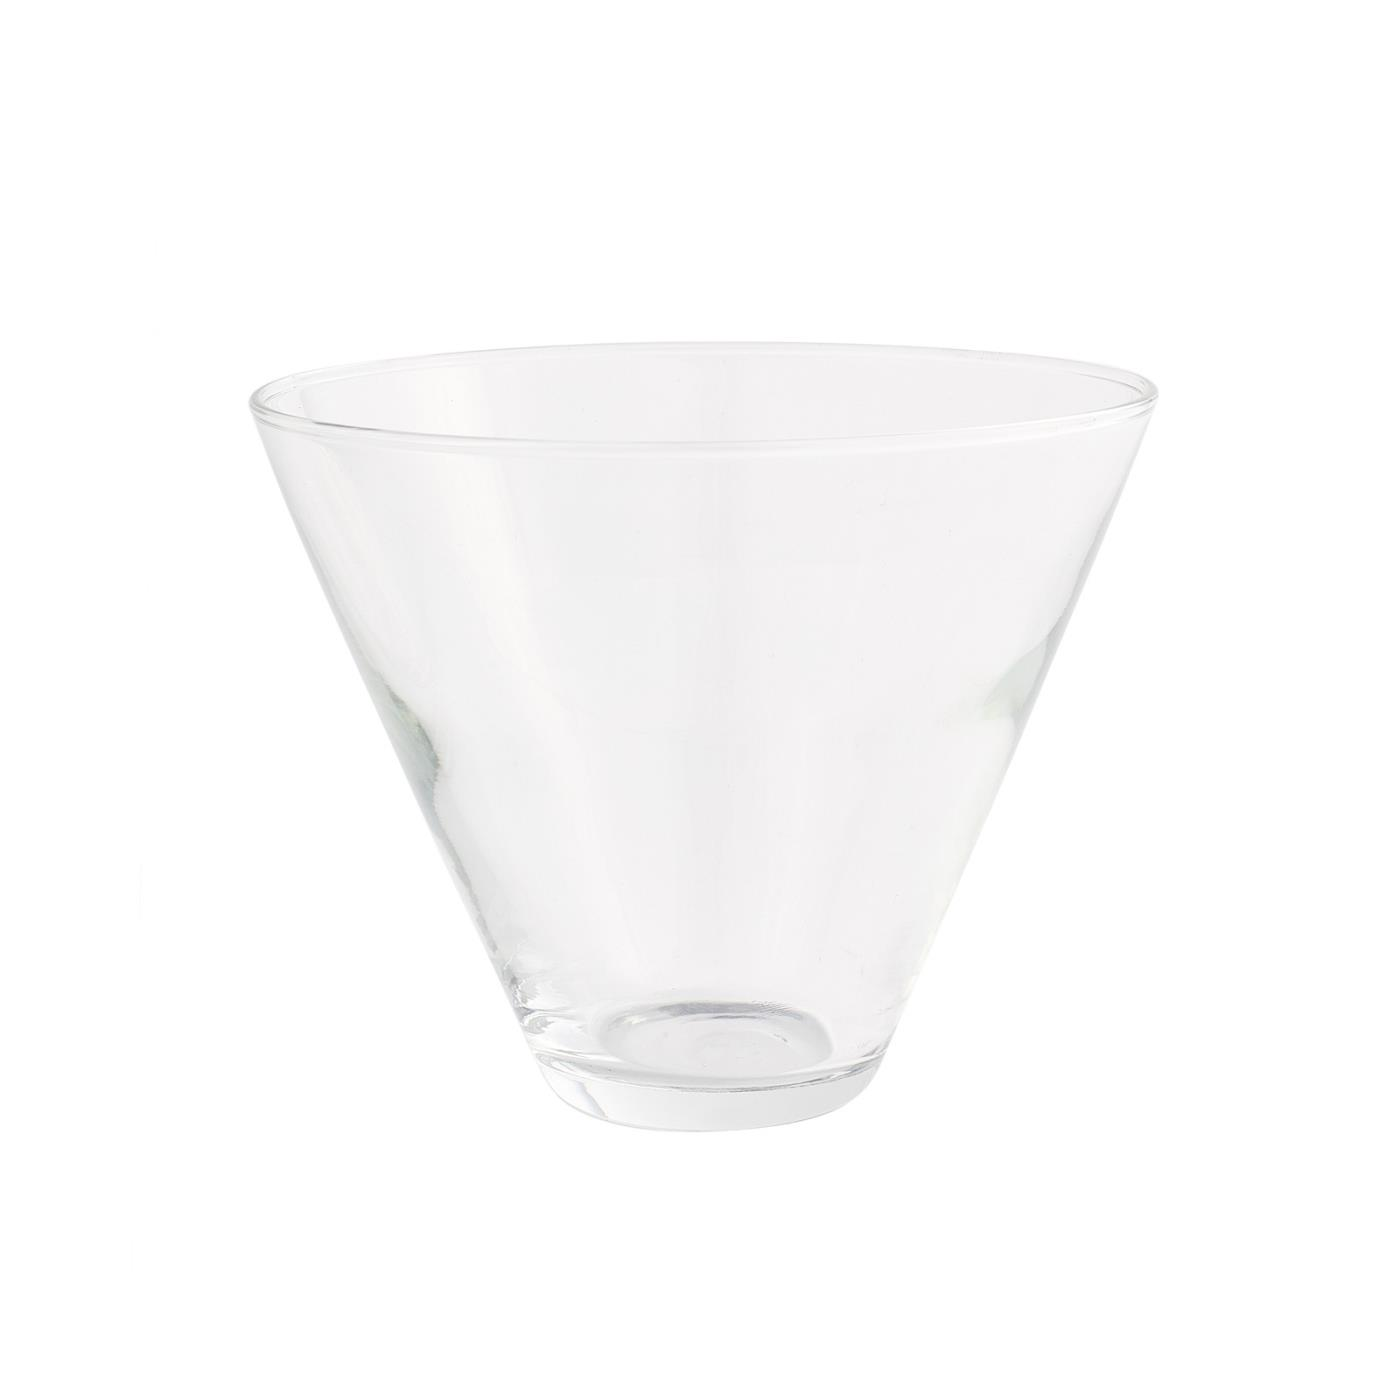 Stemless Martini Glass 13.5 oz